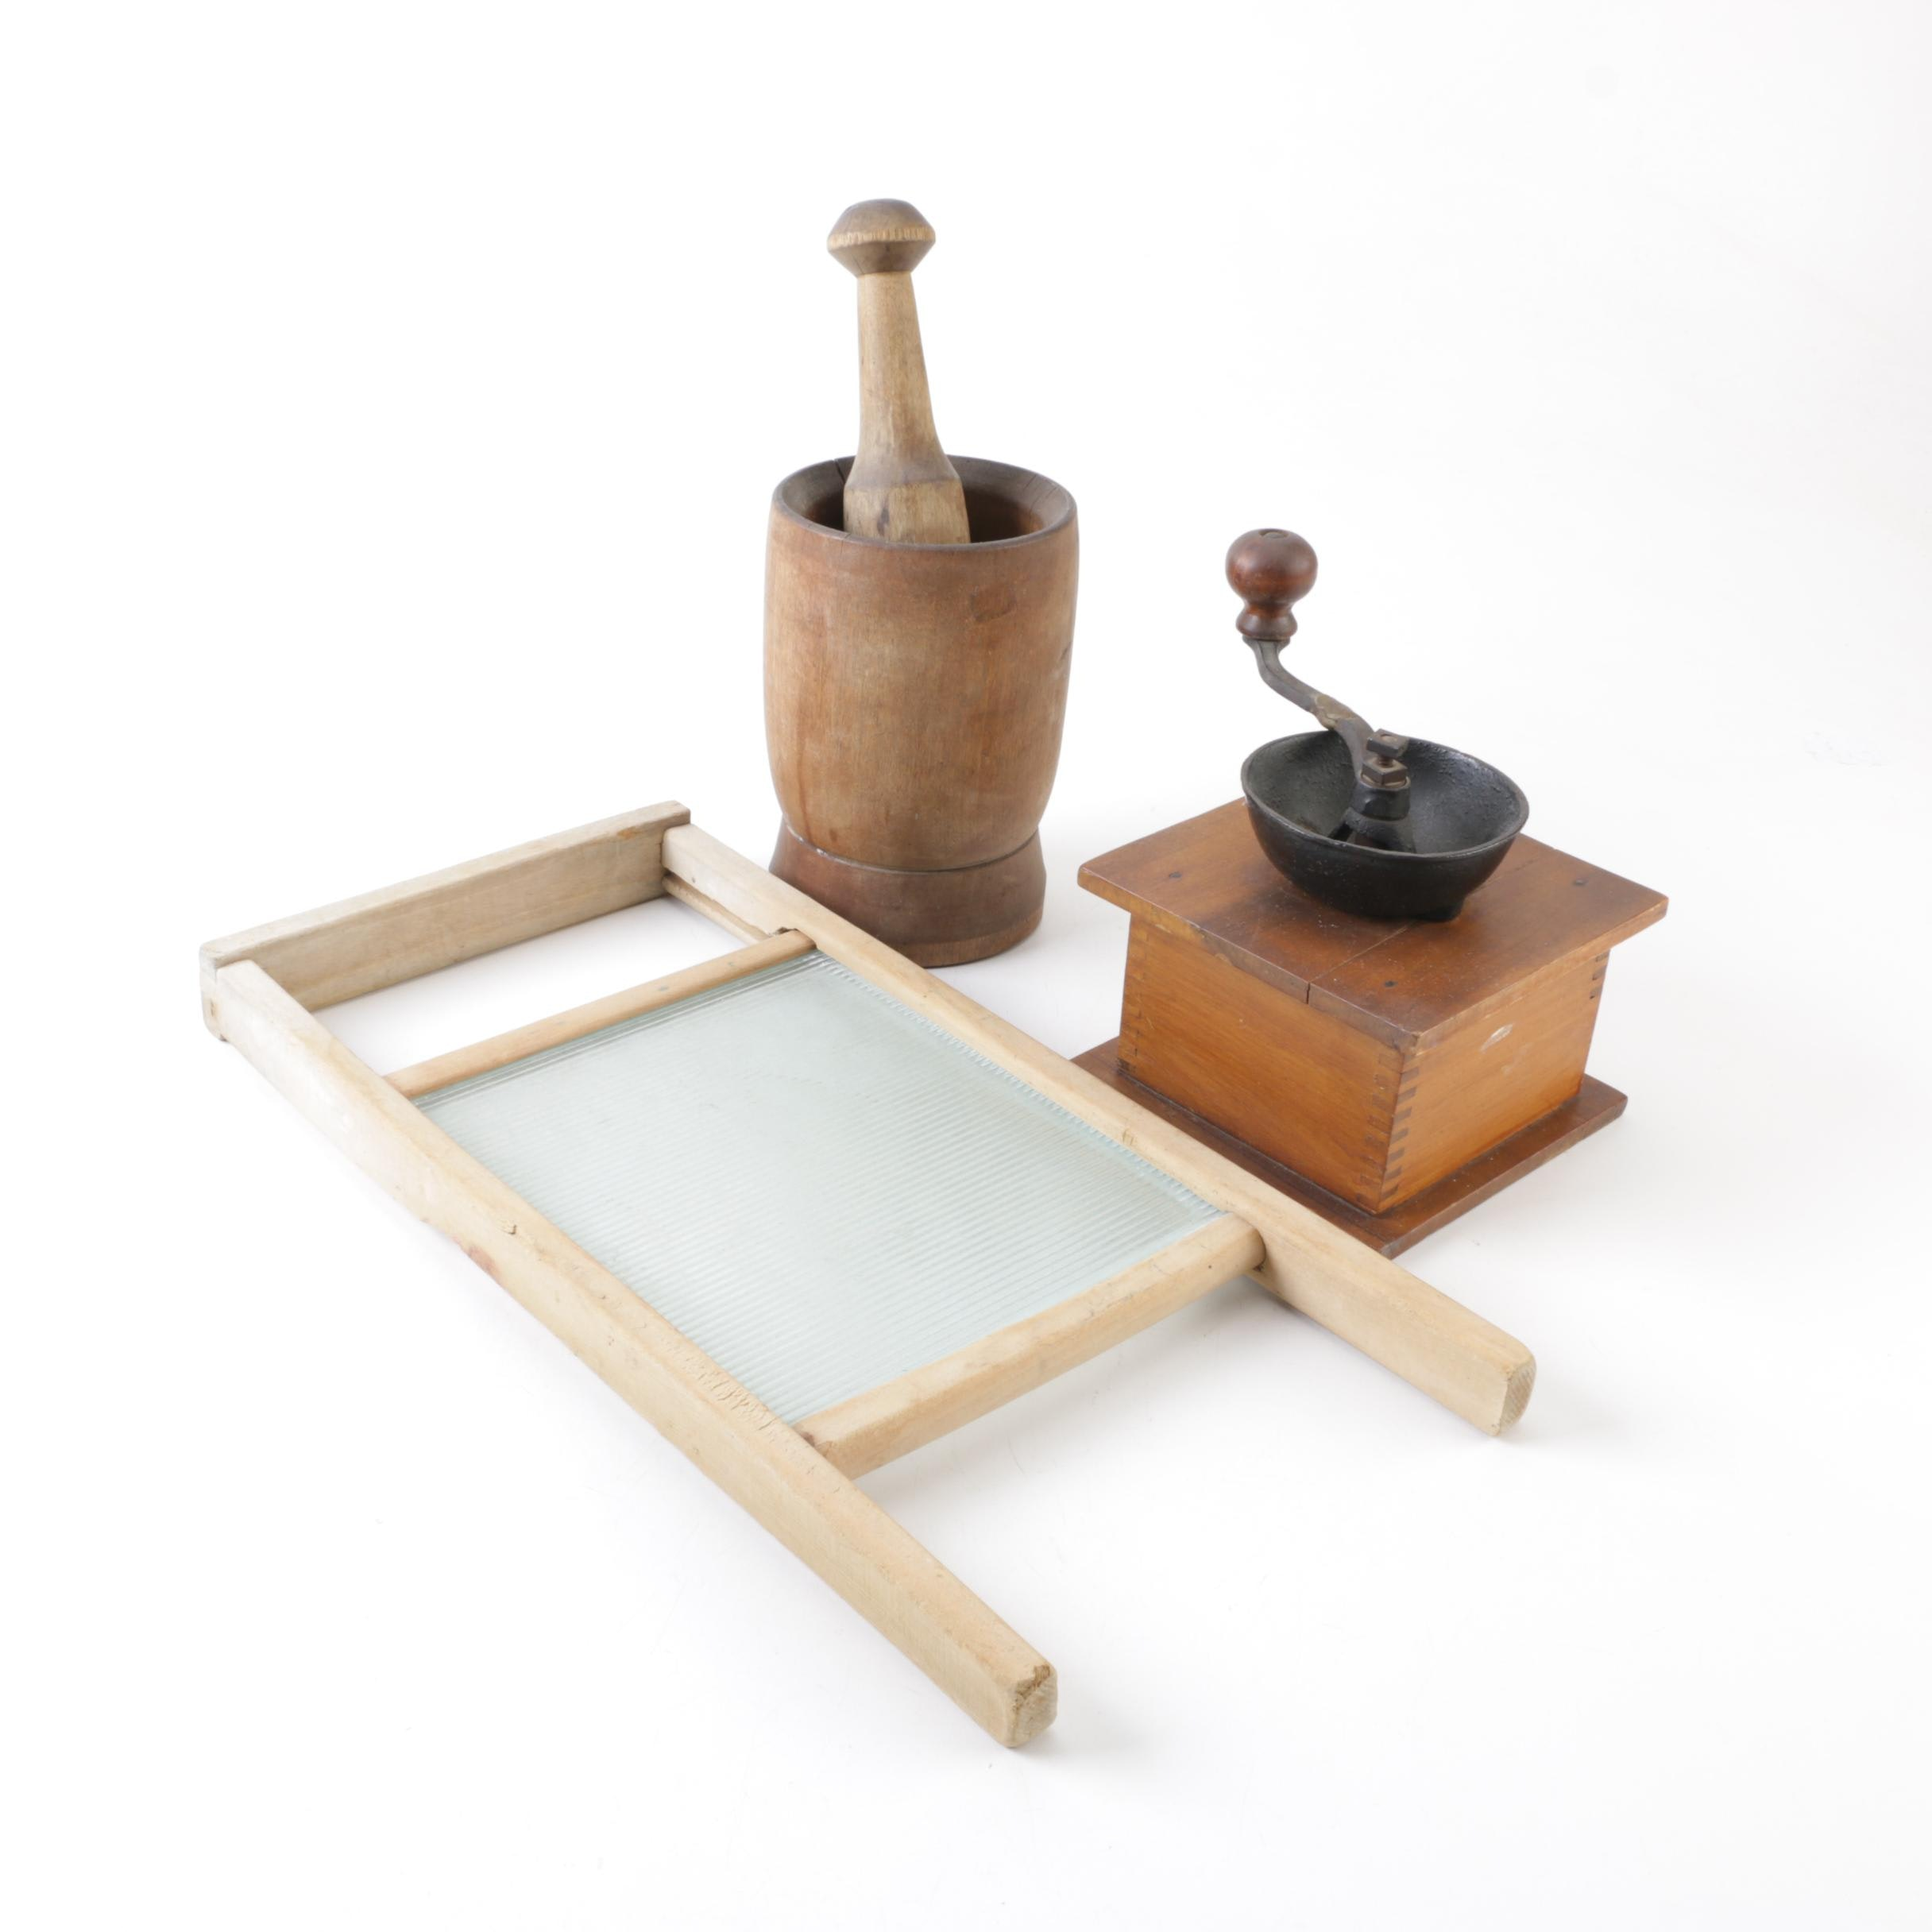 Wooden Coffee Grinder, Washboard, and Mortar with Pestle